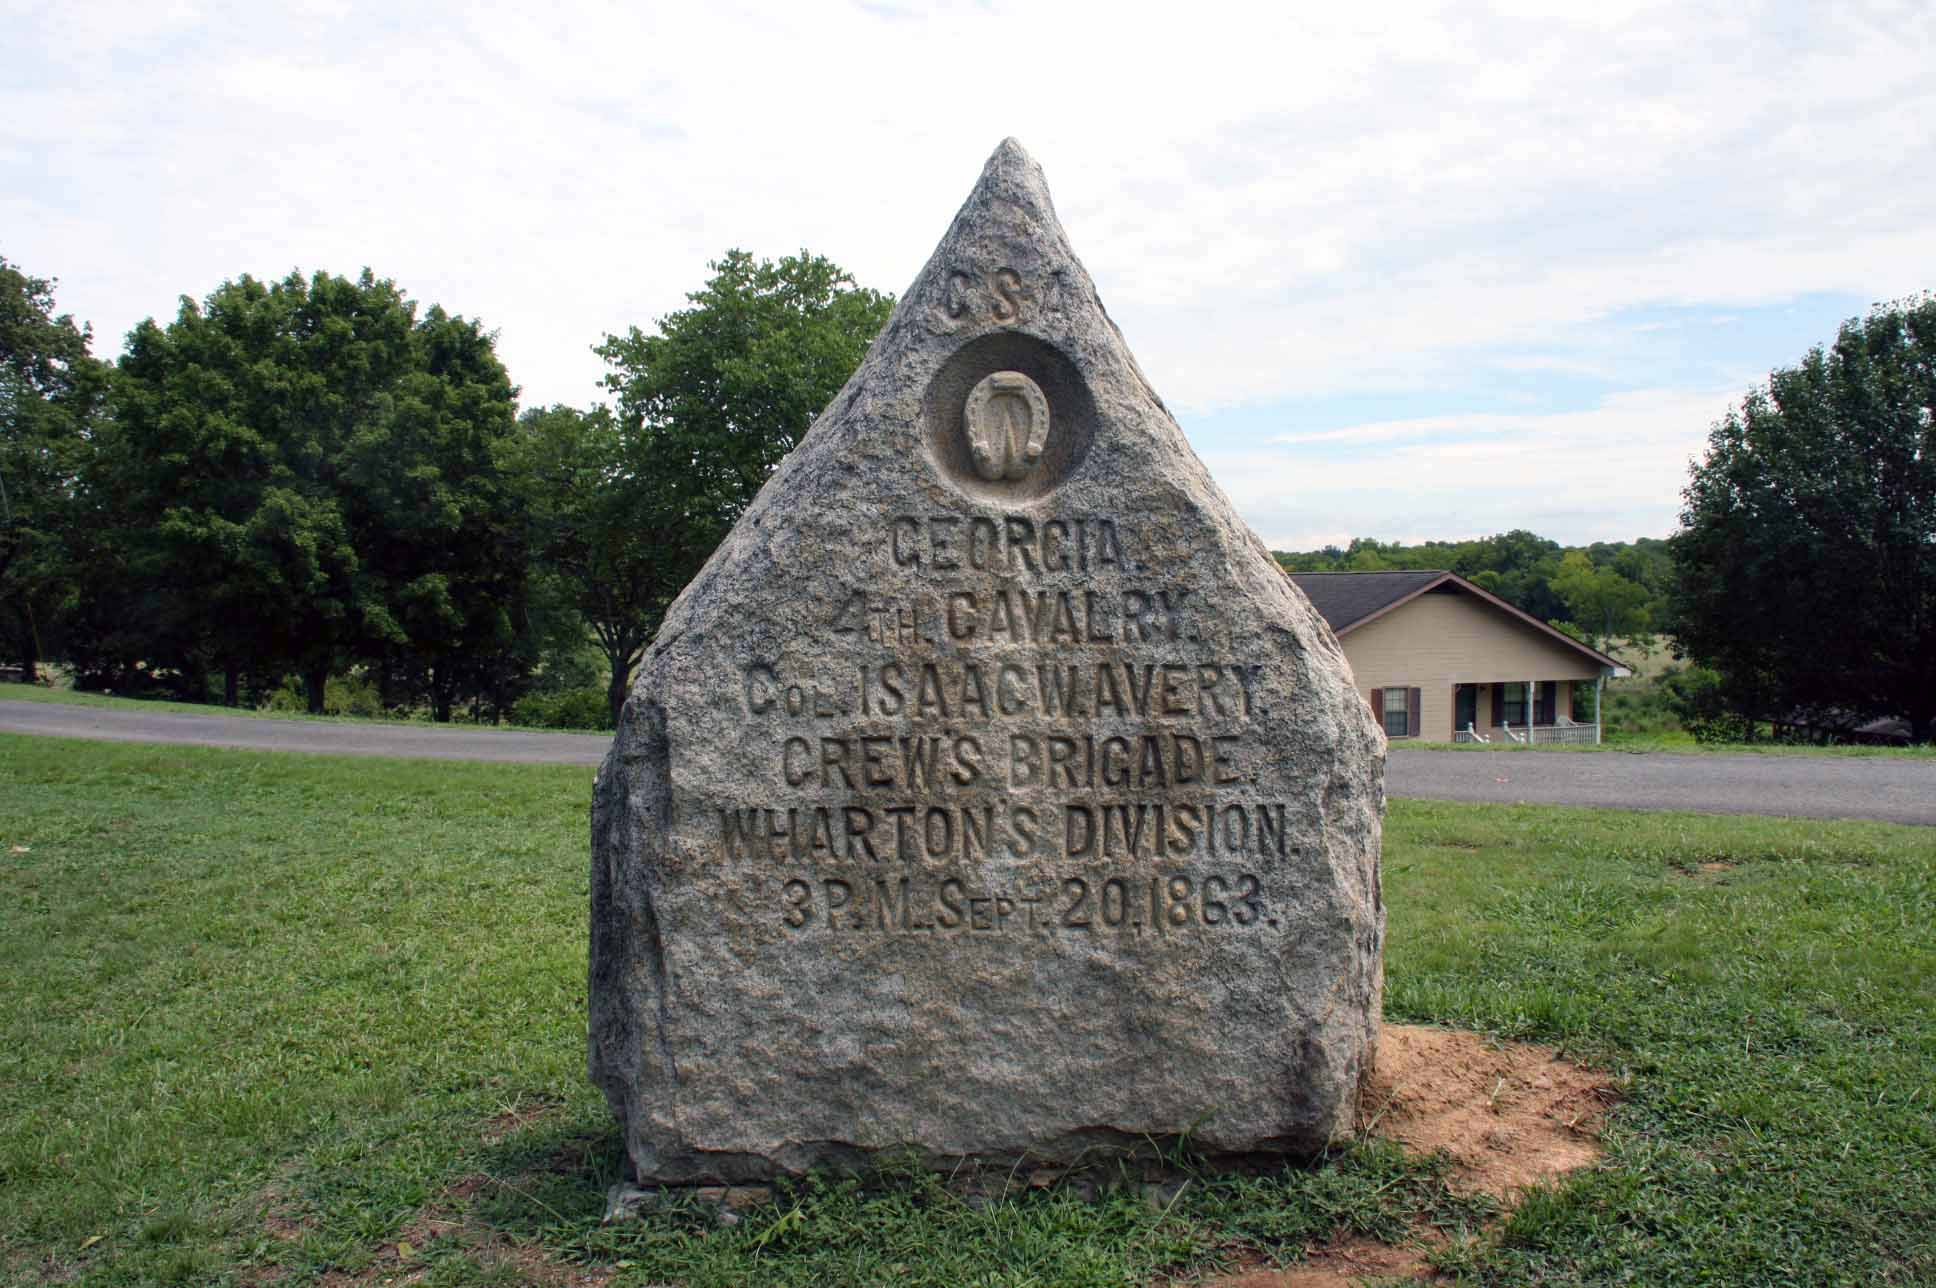 4th Georgia Cavalry Marker, click photo to enlarge.